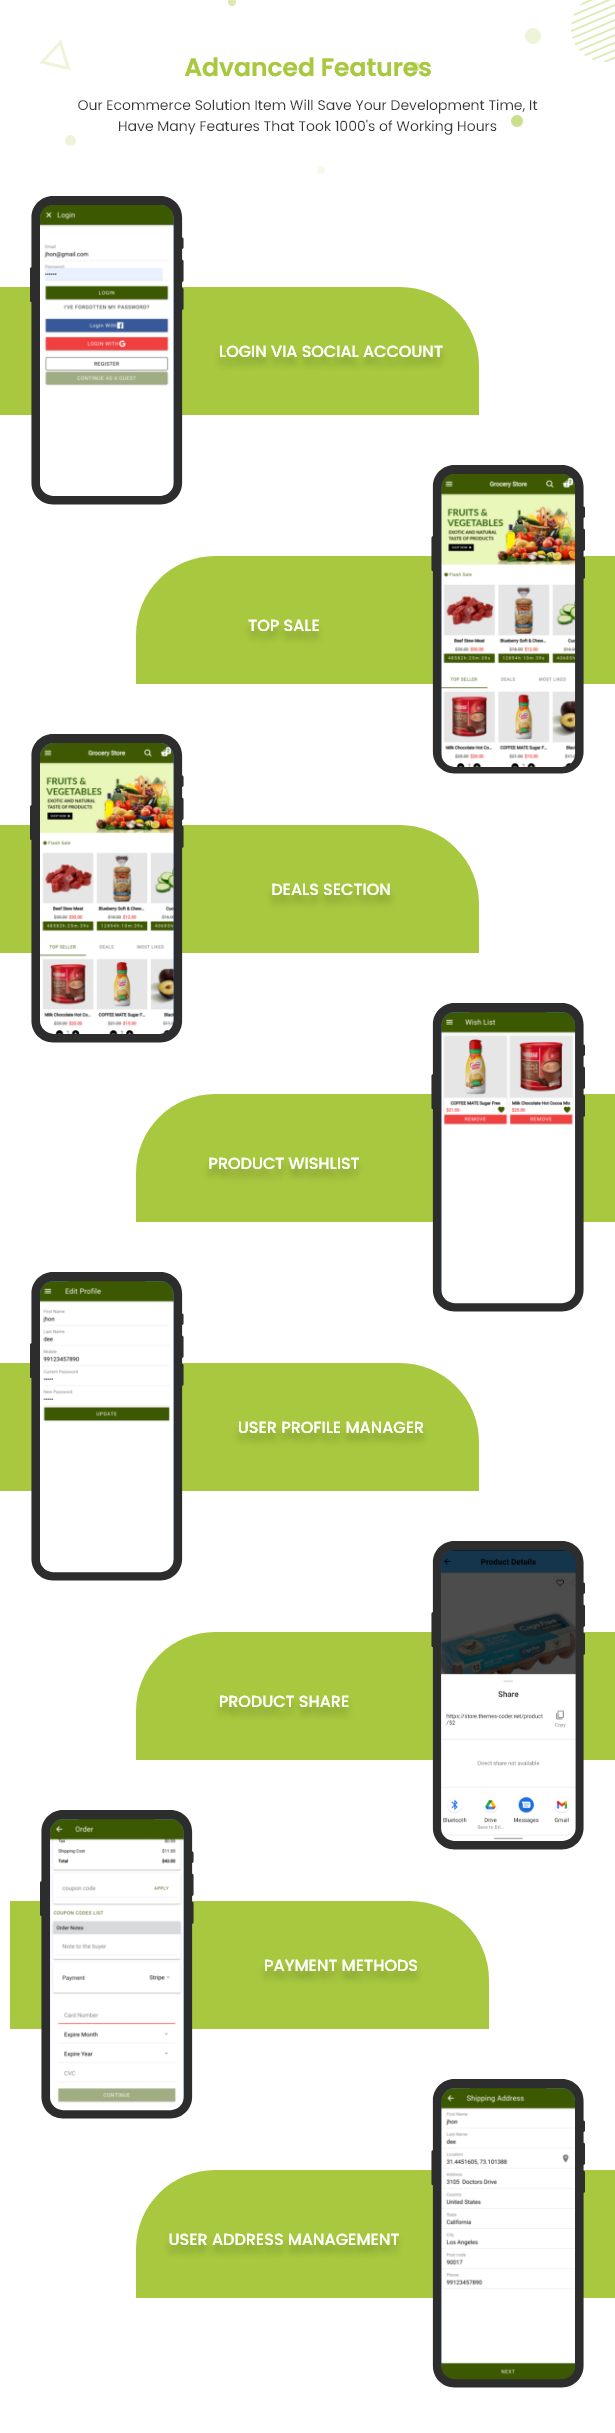 Ecommerce Solution with Delivery App For Grocery, Food, Pharmacy, Any Store / Laravel + Android Apps - 41